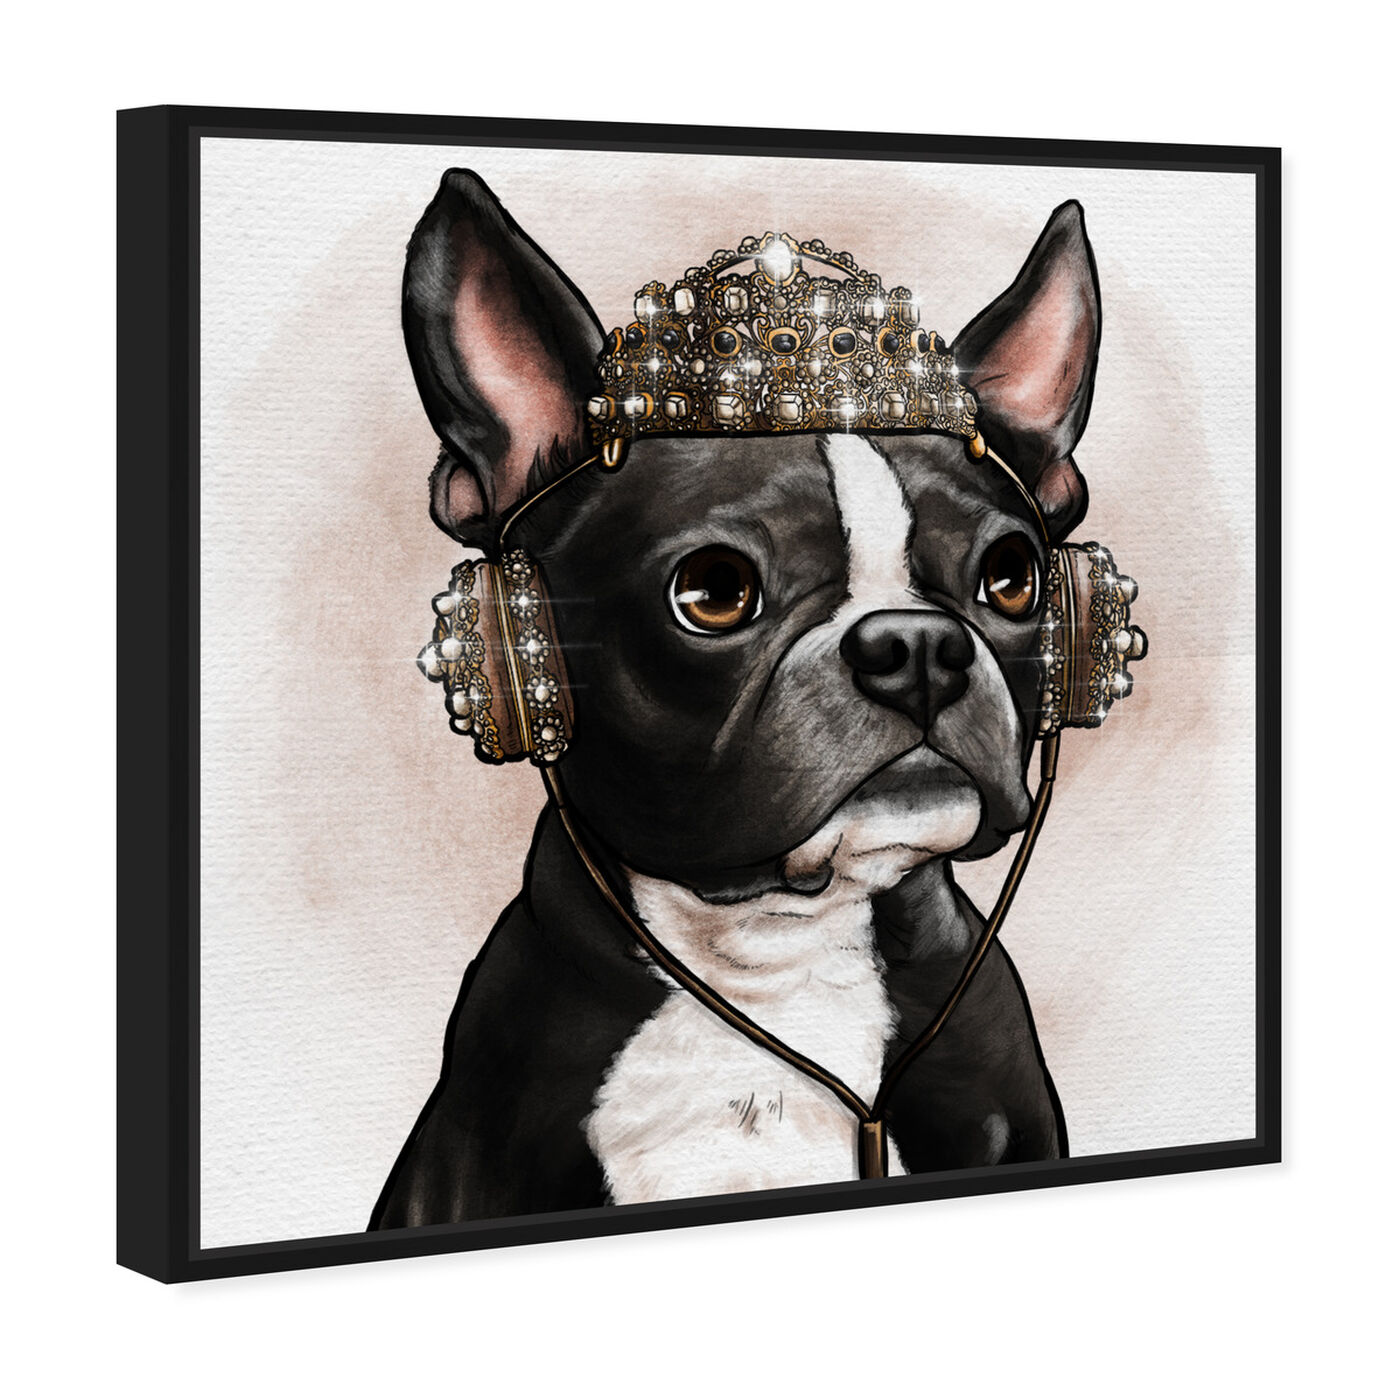 Angled view of Crowned Terrier featuring animals and dogs and puppies art.